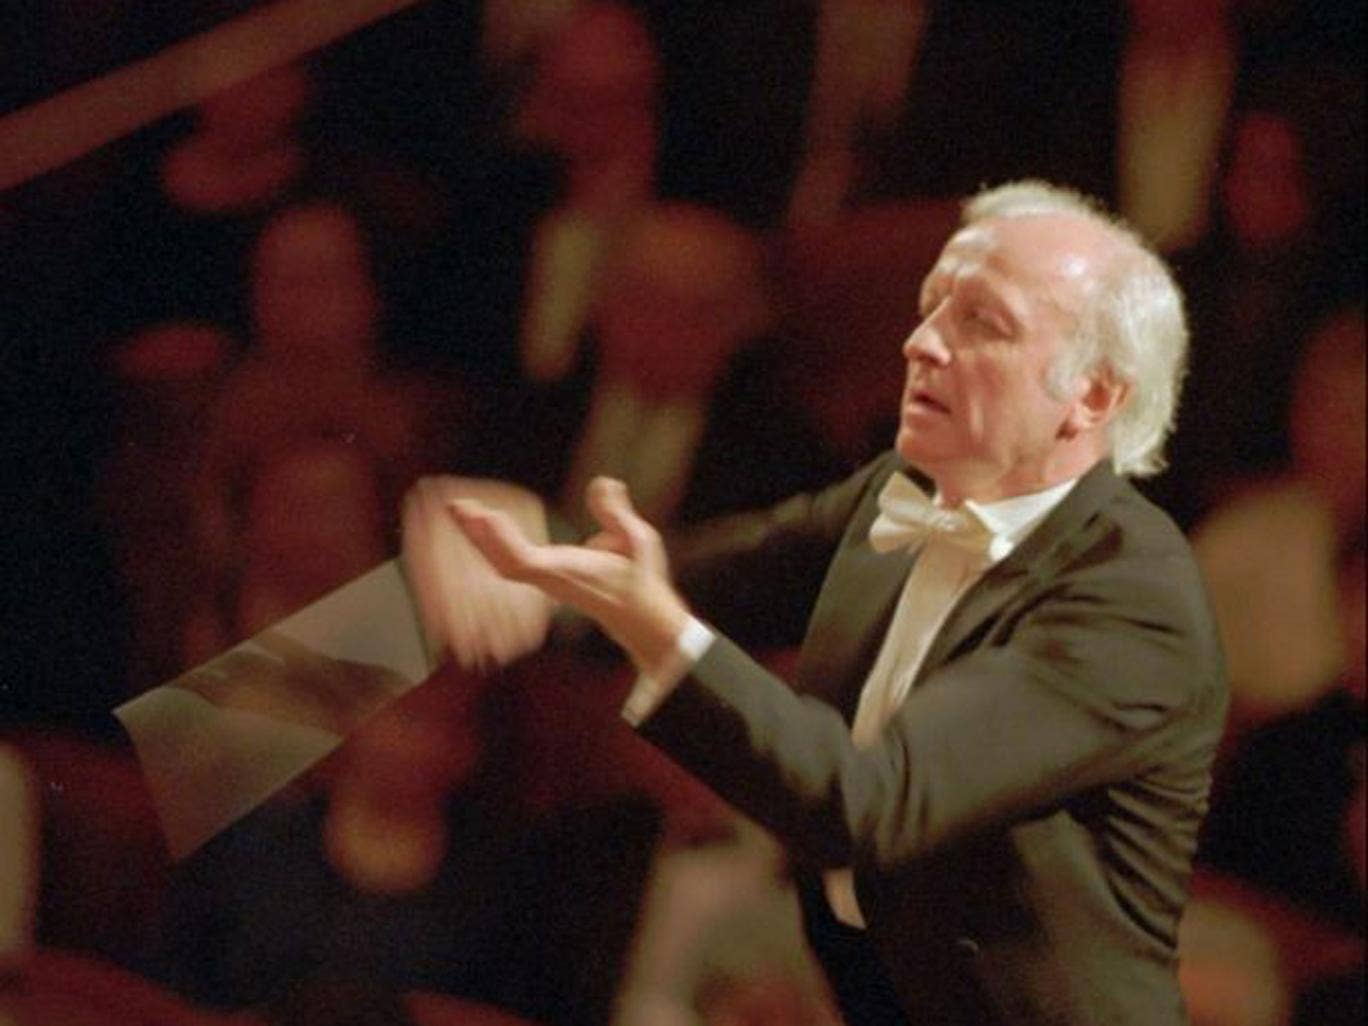 The then chief conductor of Czech Philharmony Orchestra Gerd Albrecht performs during the concert held in Prague in 1996